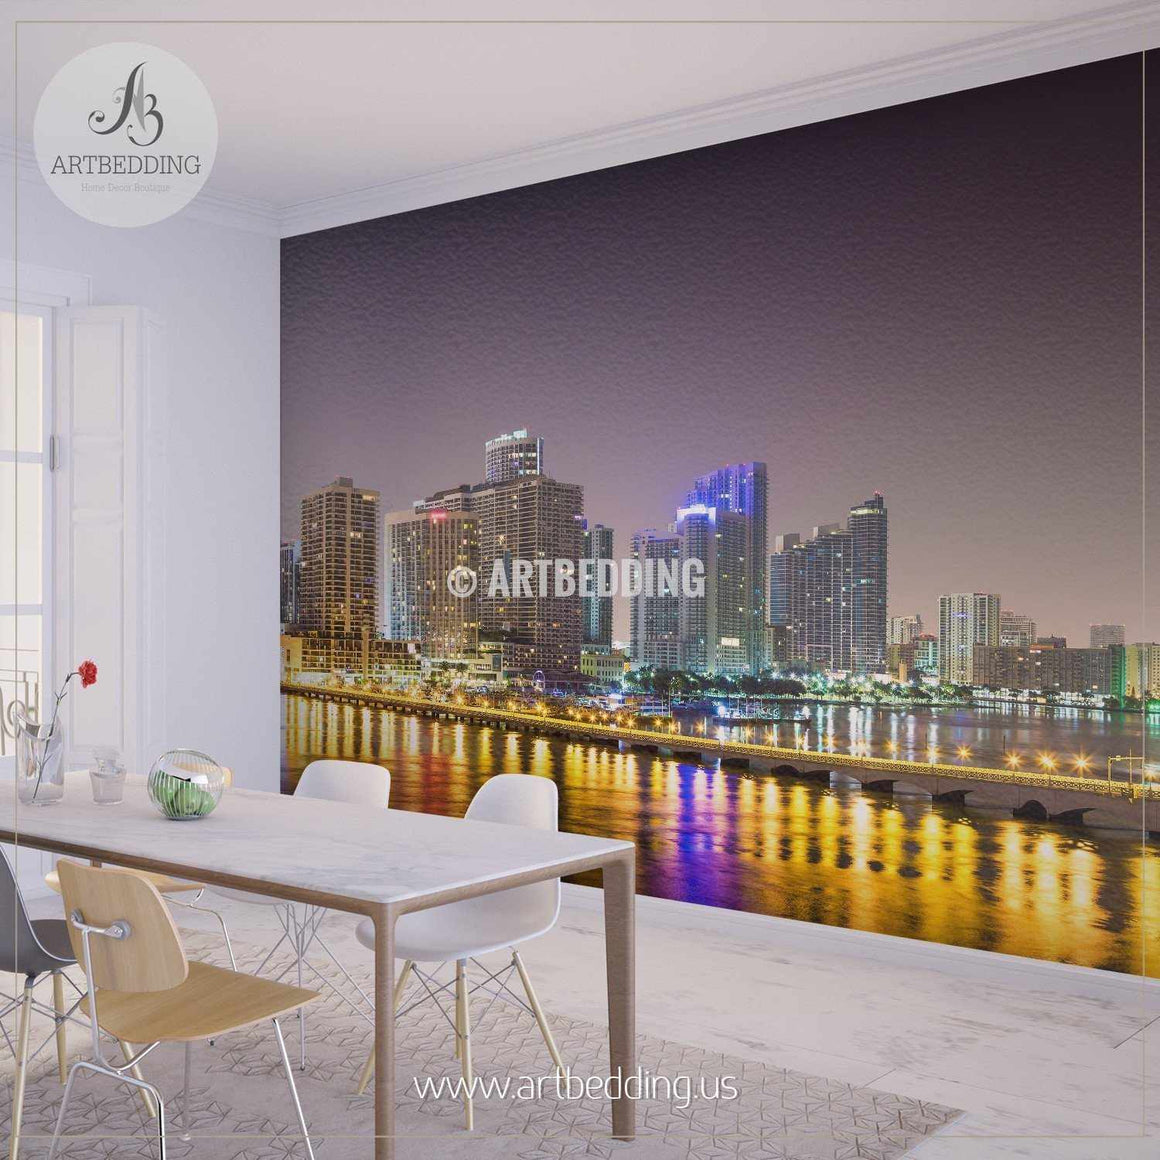 Downtown Miami at Night Cityscape Wall Mural, USA Photo sticker, USA wall decor wall mural